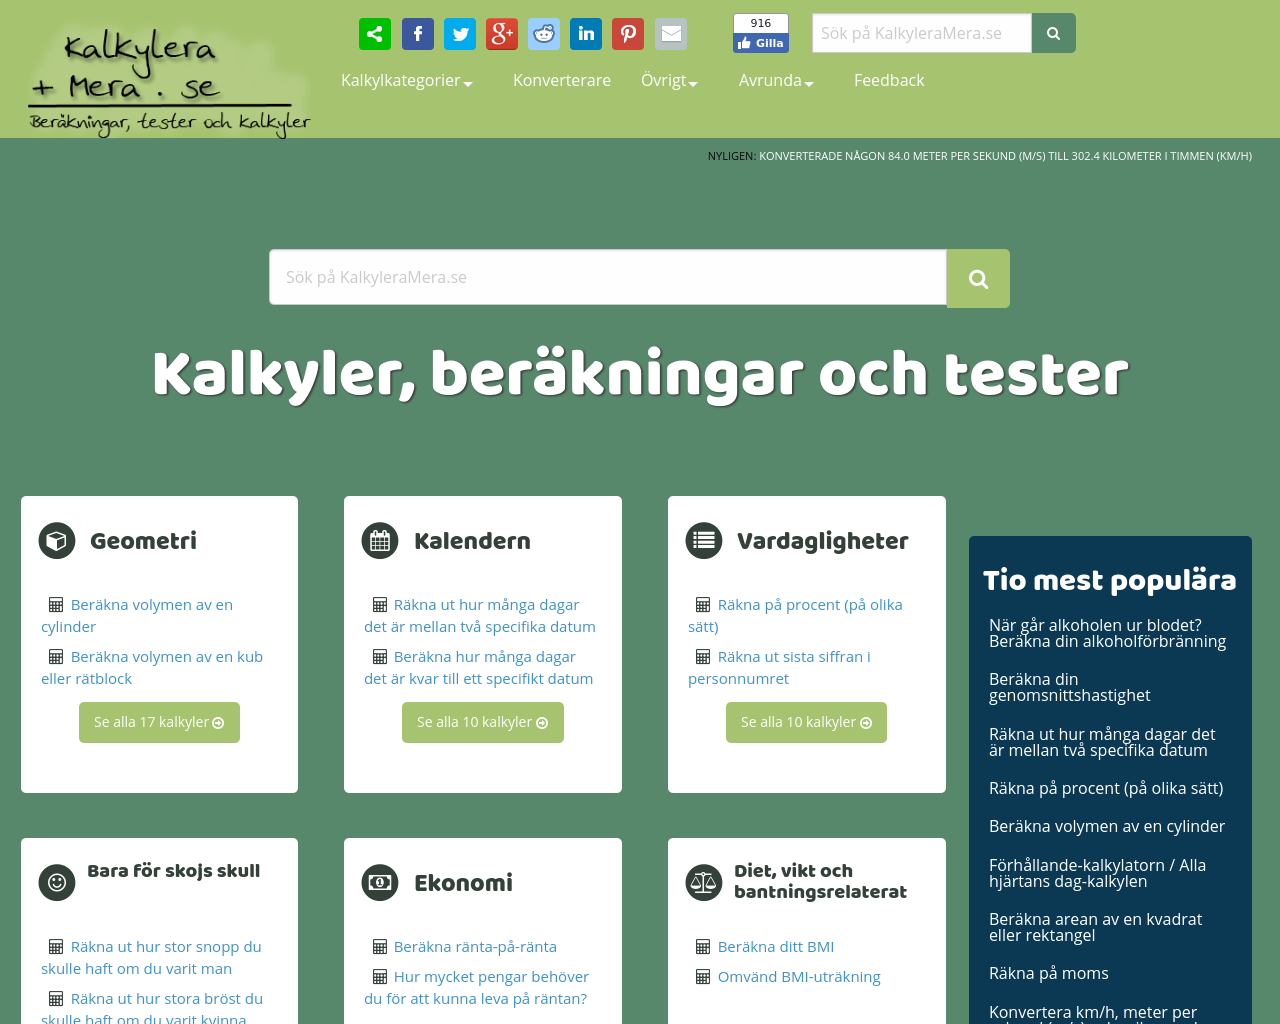 Kalkylera-+-Mera.se-Advertising-Reviews-Pricing